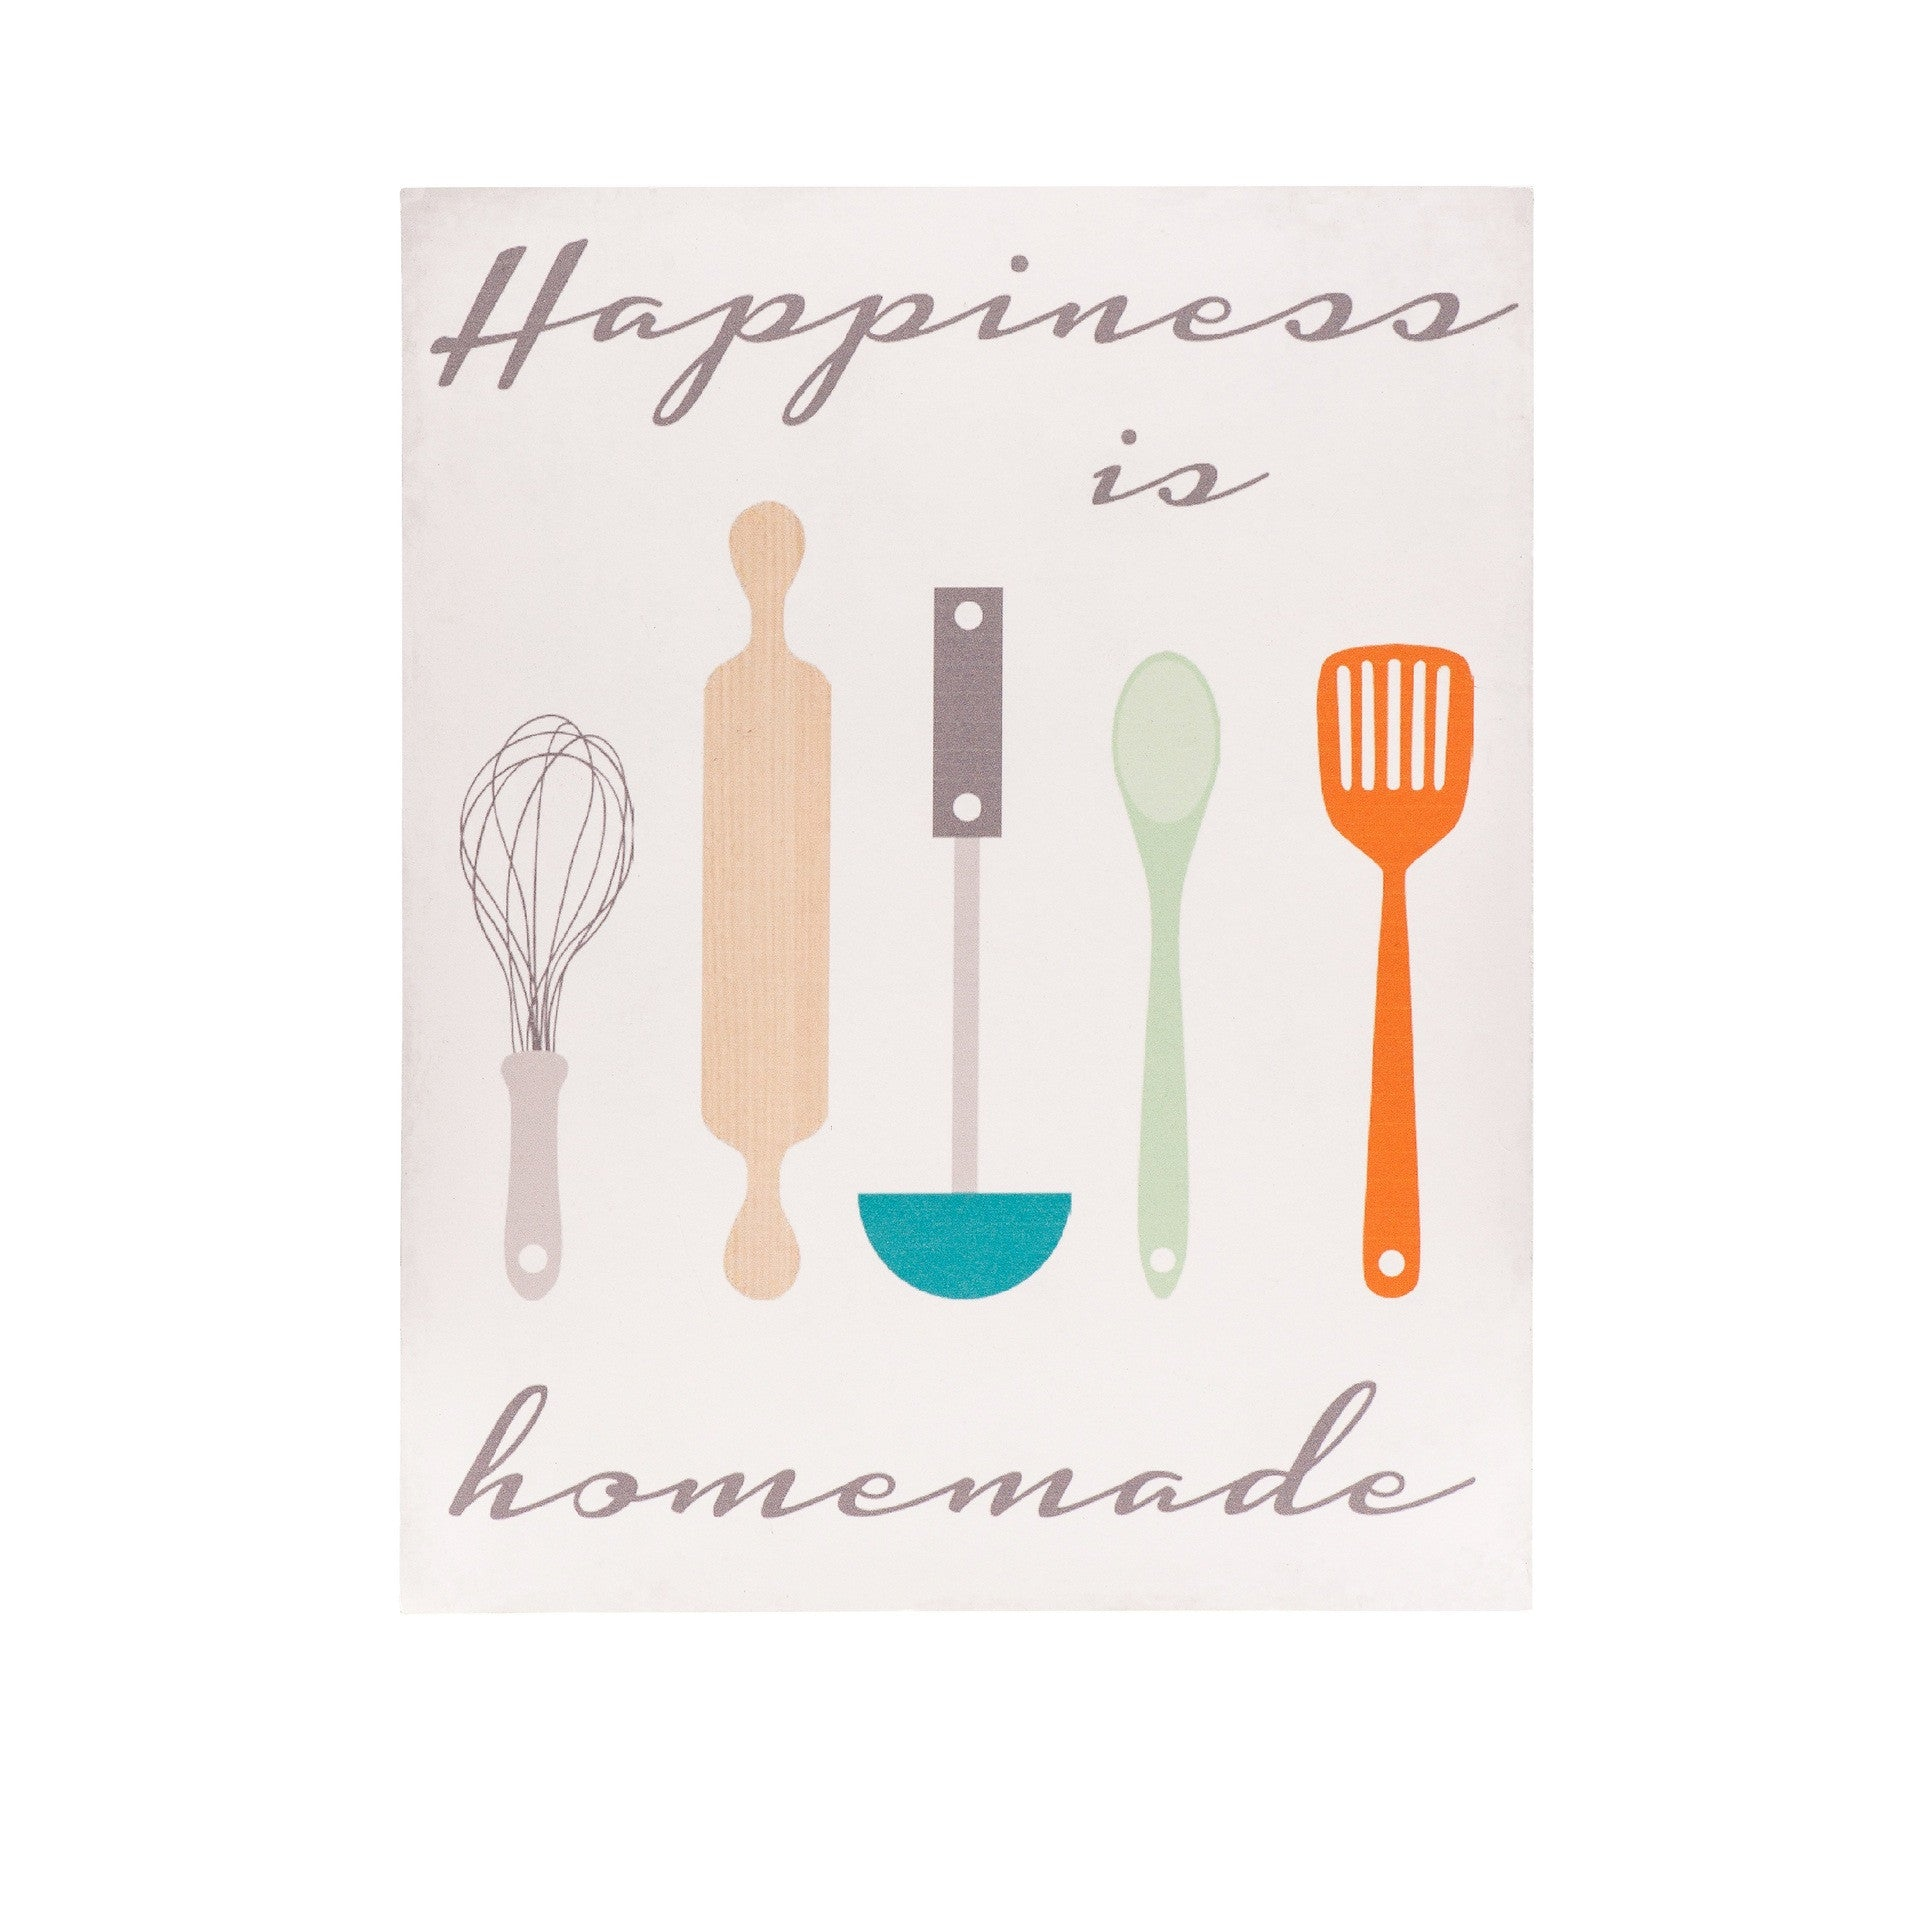 photograph regarding Happiness is Homemade identify Most significant Joy is Home made Wall Plaque-2800694